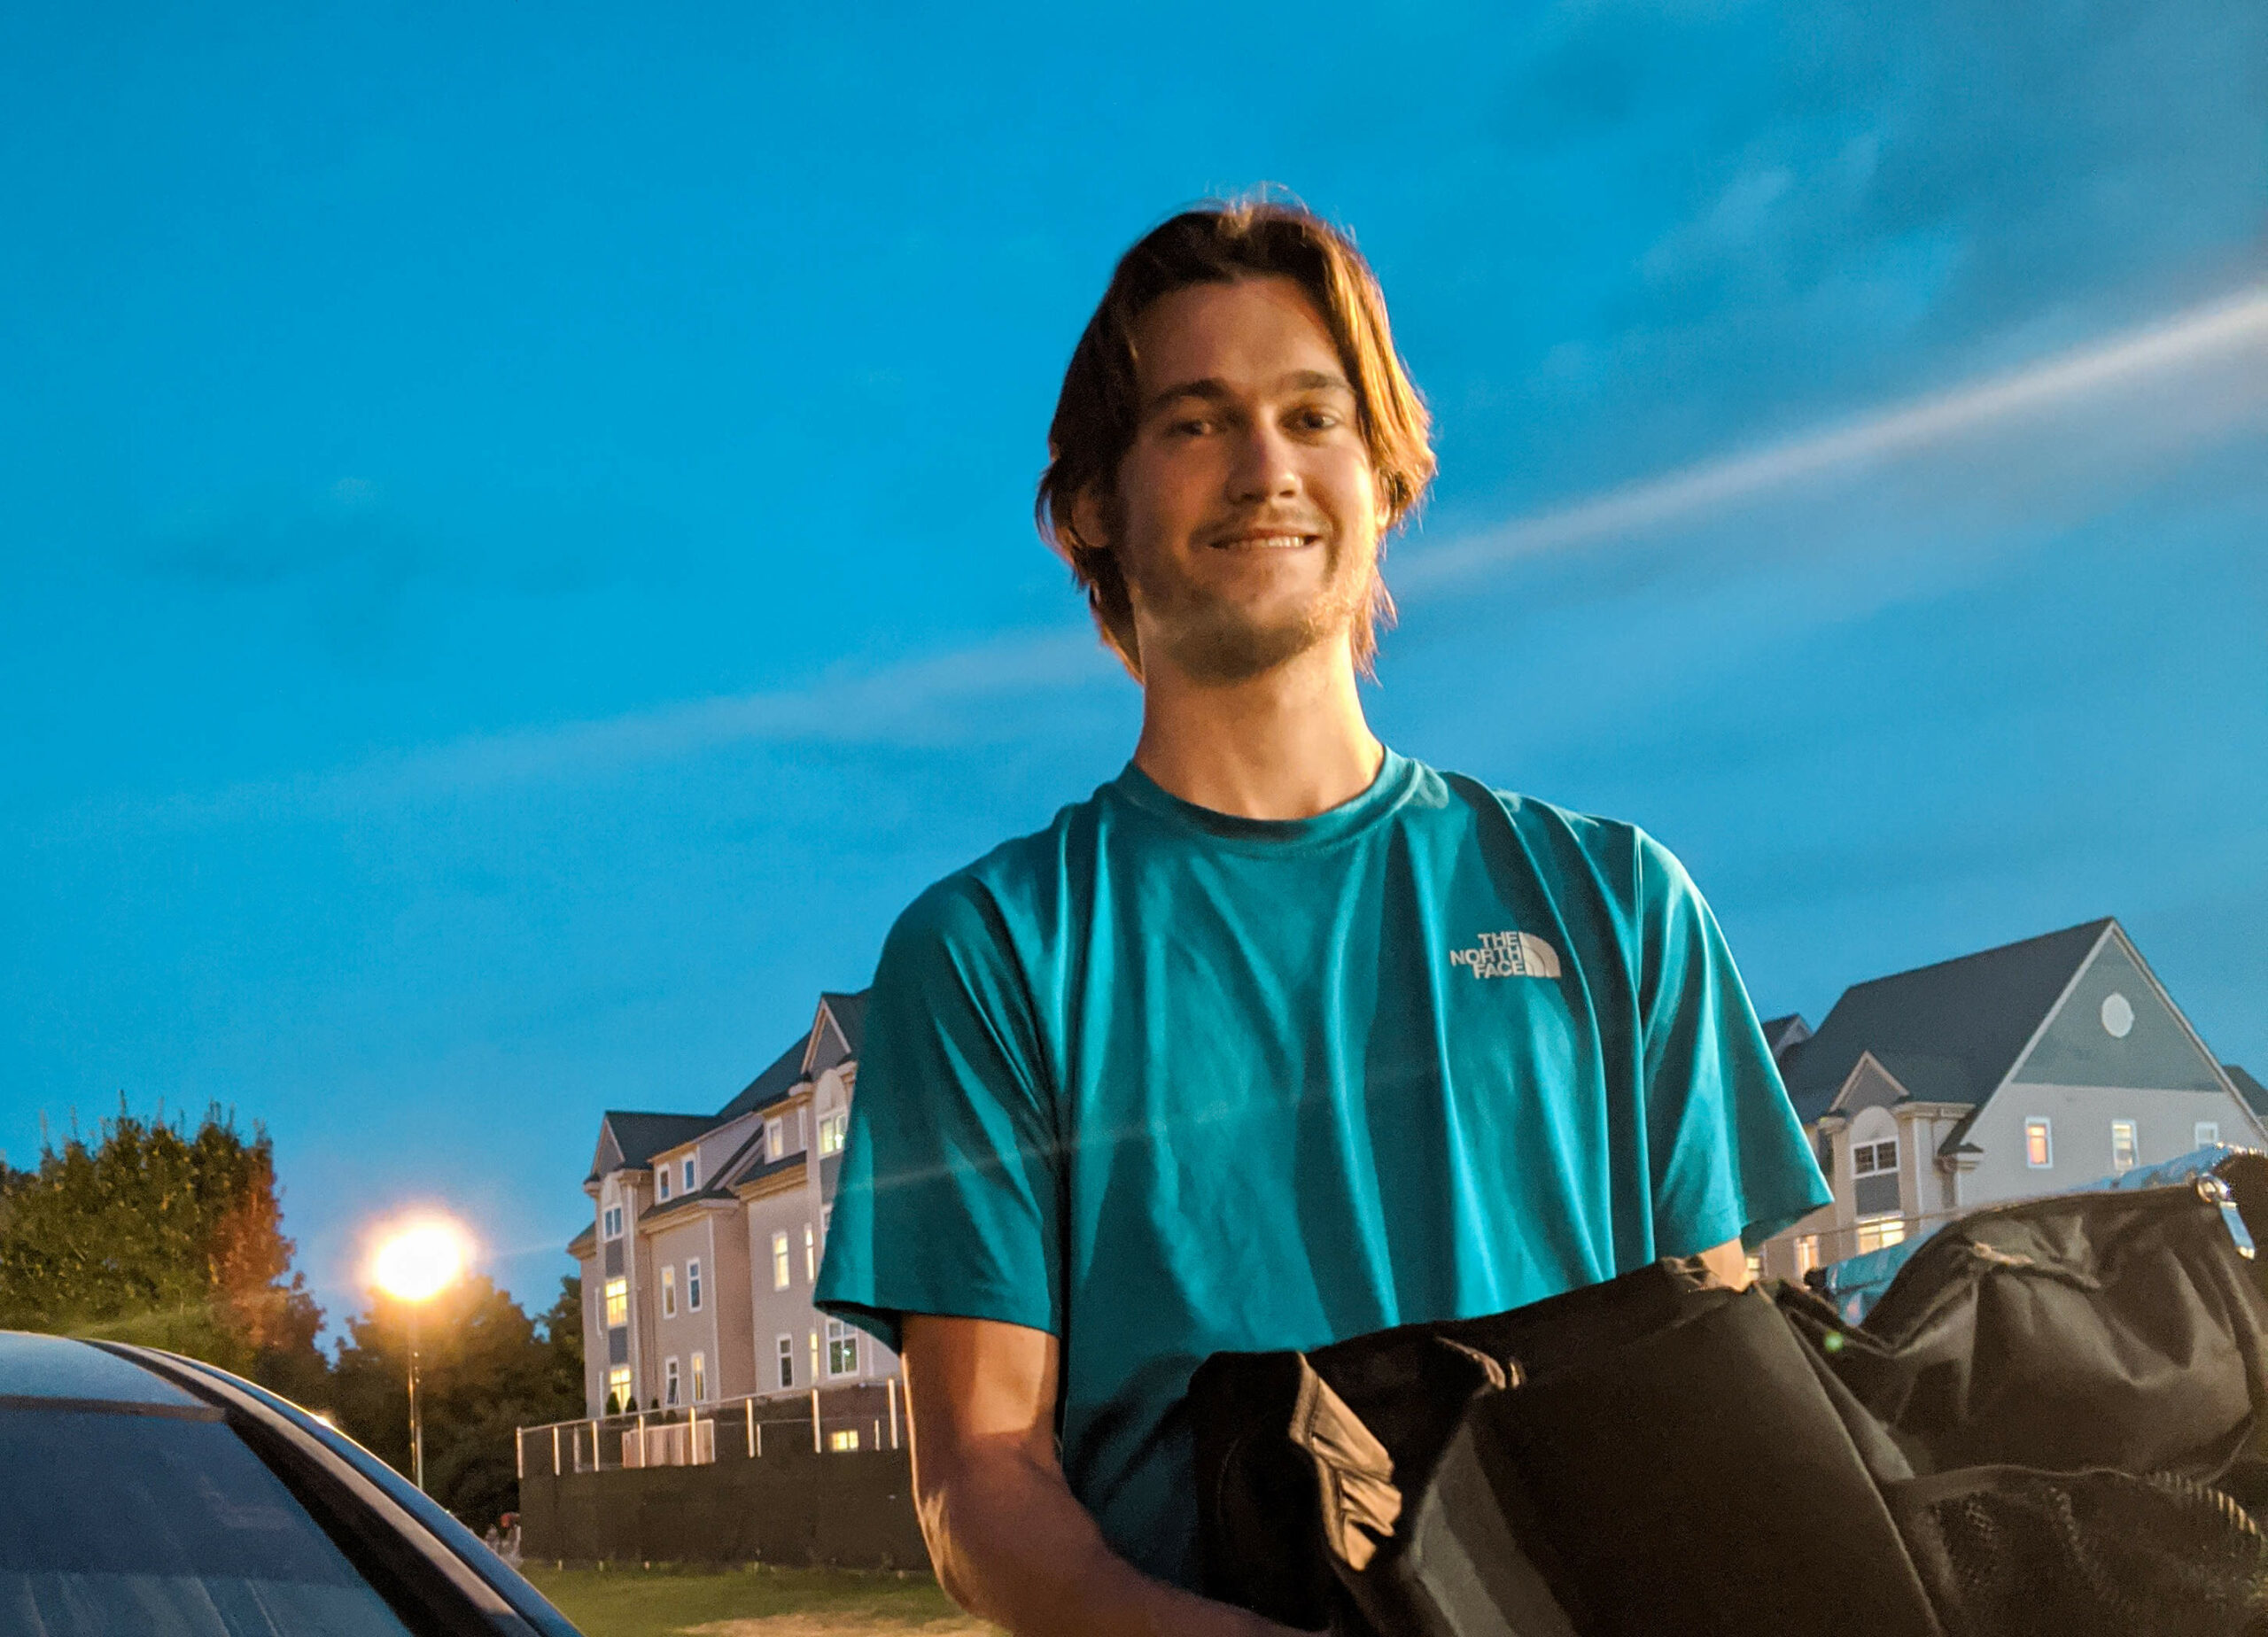 Simon Graber Miller stands next to his car and holds a bag of food that he is delivering through Grubhub and Door Dash